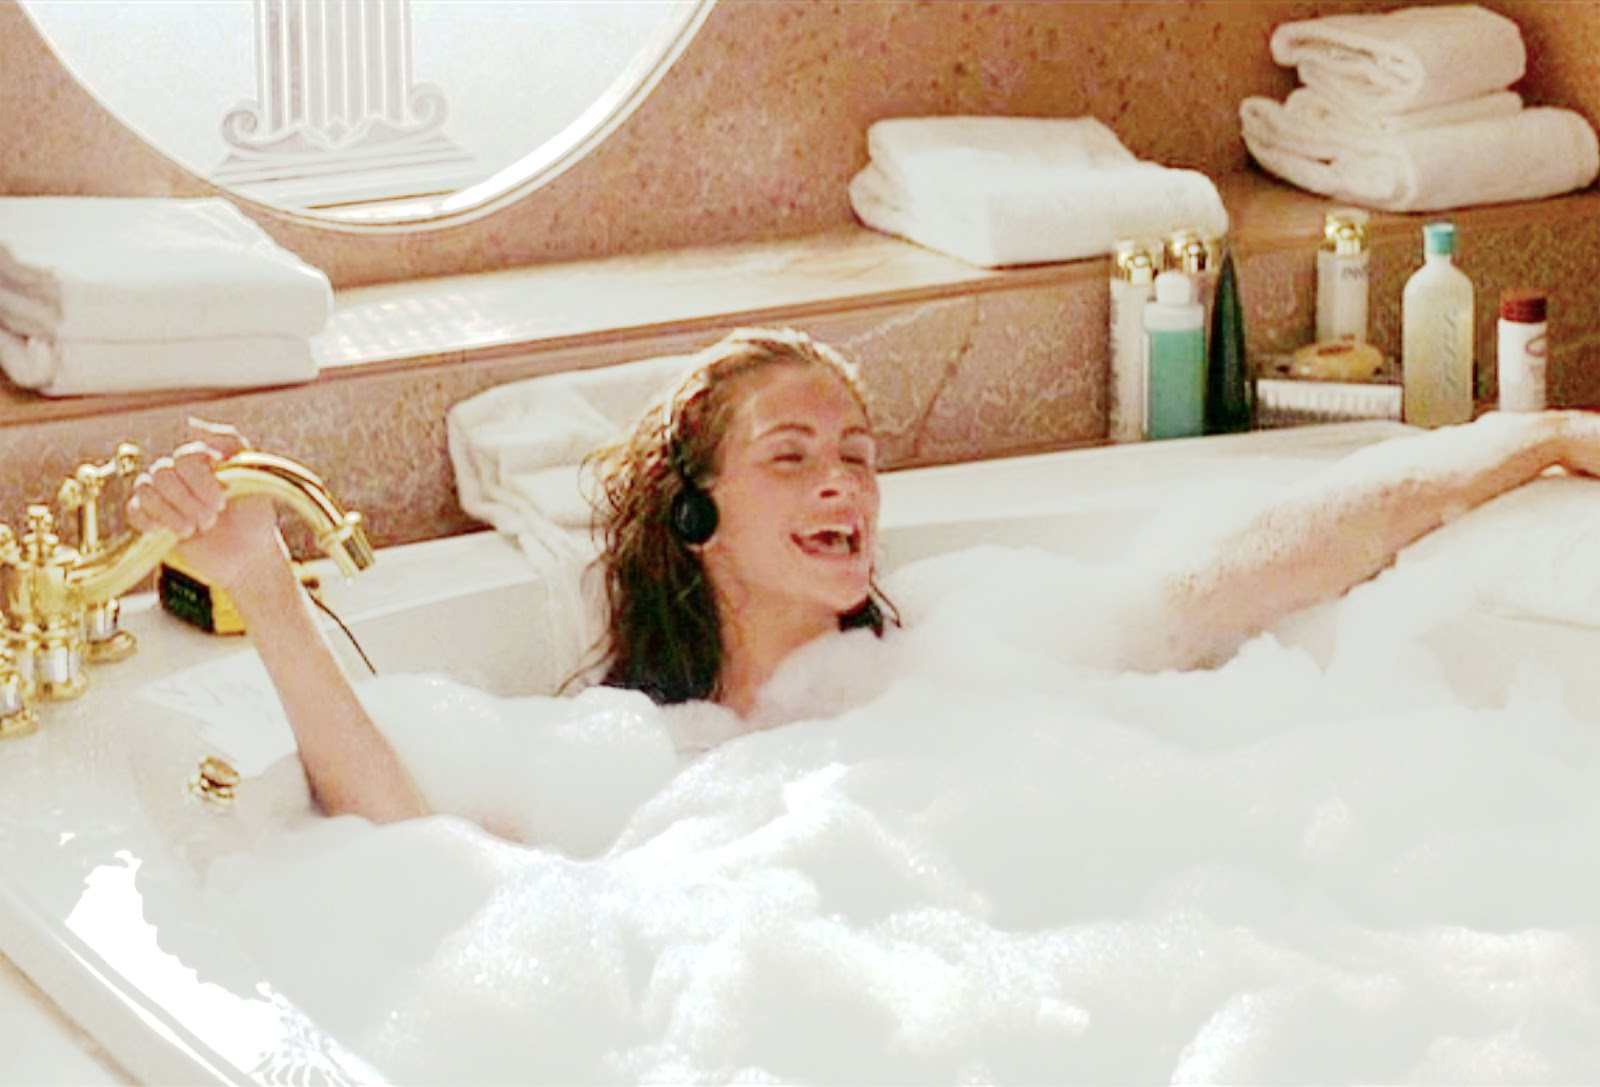 7 Reasons Taking A Bath Is Way Superior To Shower